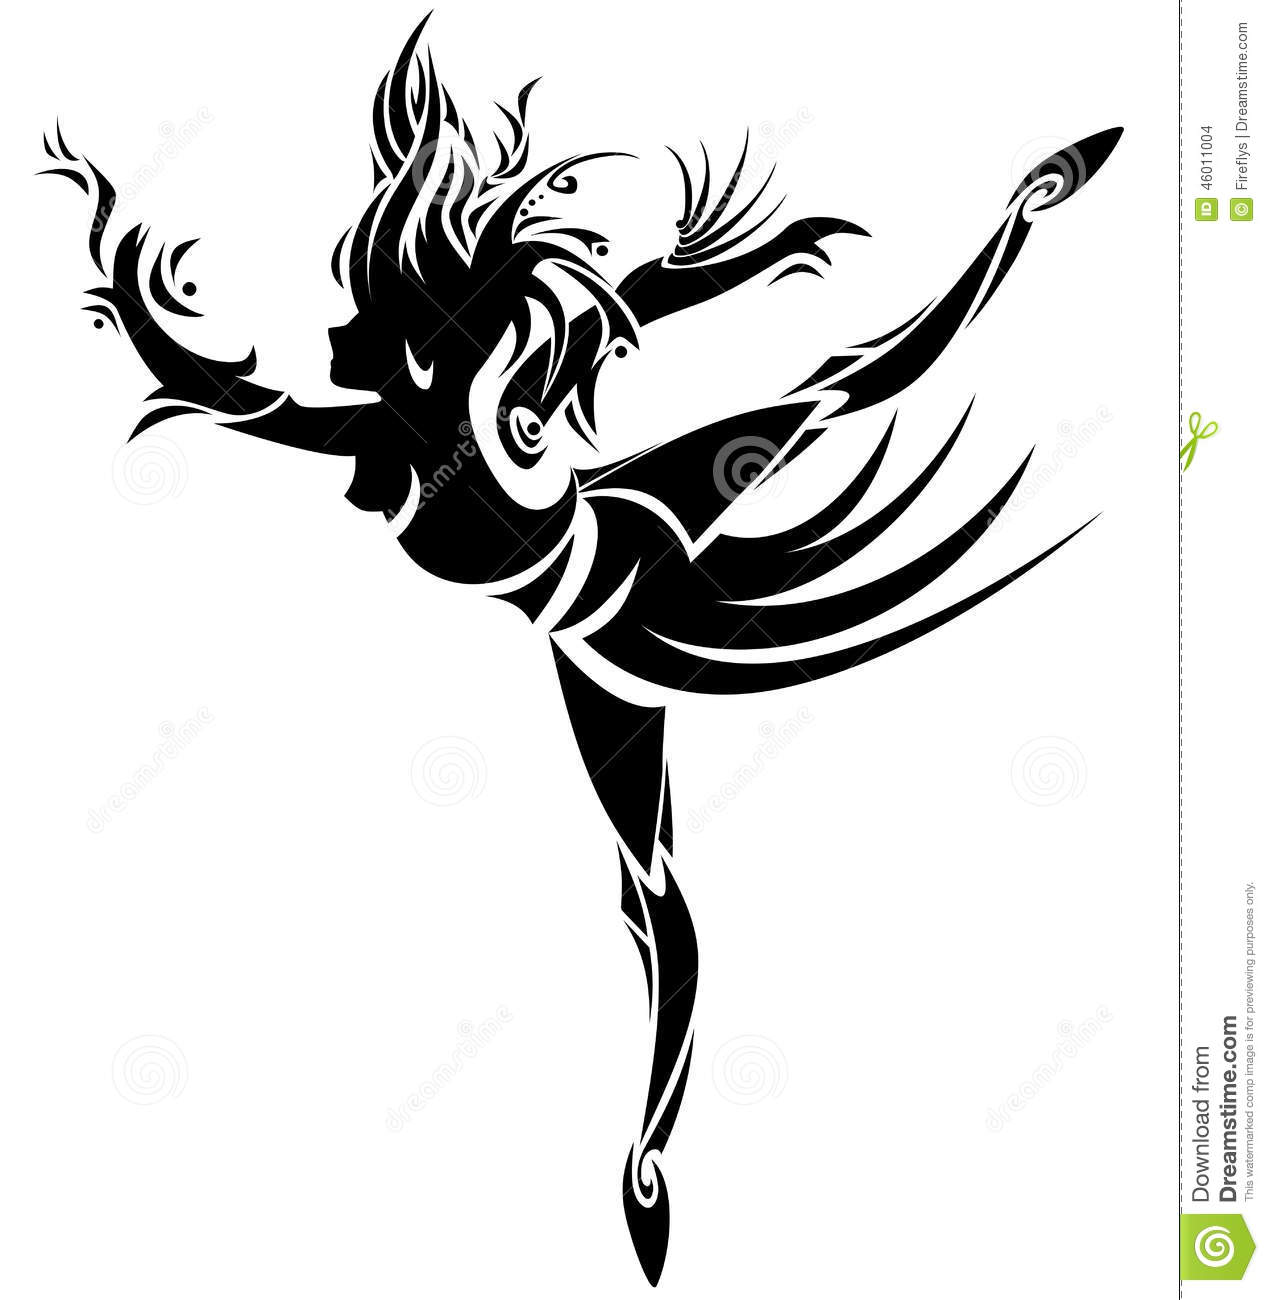 dfc1c7ae6 Abstract dancing girl in tattoo style. Vector. Designers Also Selected  These Stock Illustrations